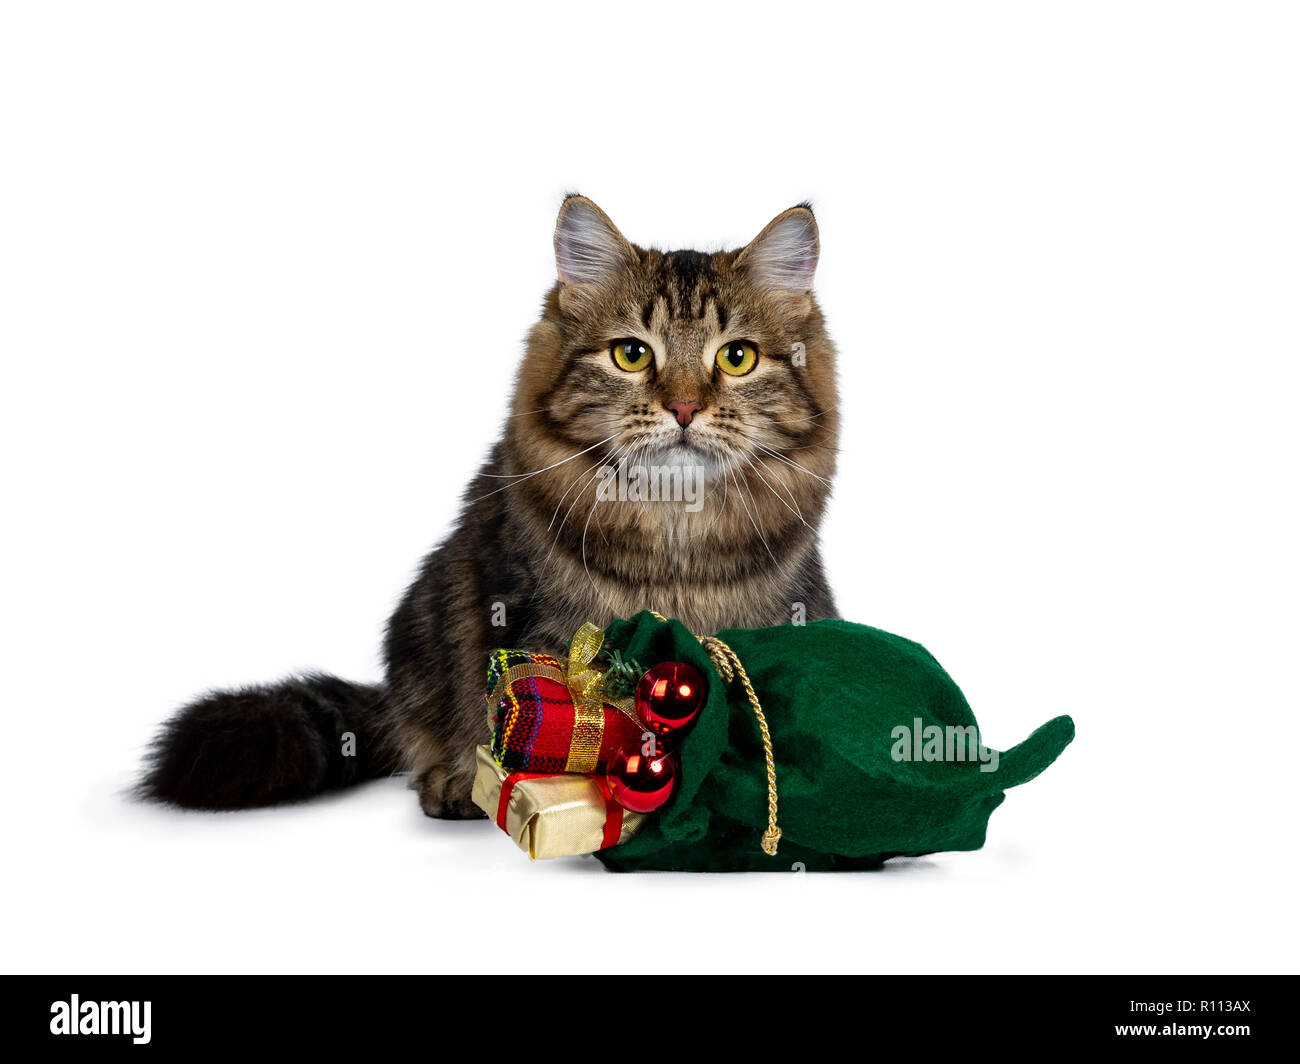 Cute black tabby Siberian cat kitten sitting up behind a green christmas bag filled with presents and red balls, looking straight ahead with bright ye - Stock Image